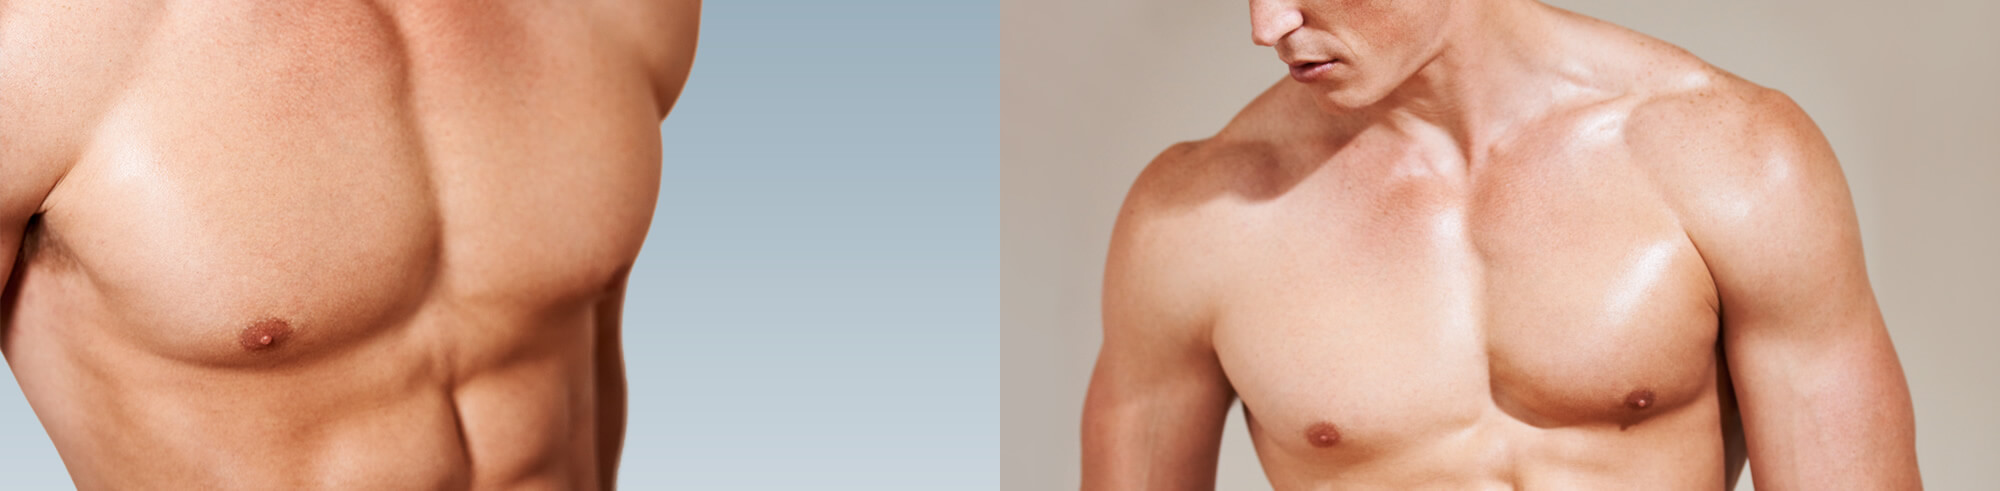 Liposuction And Gynecomastia